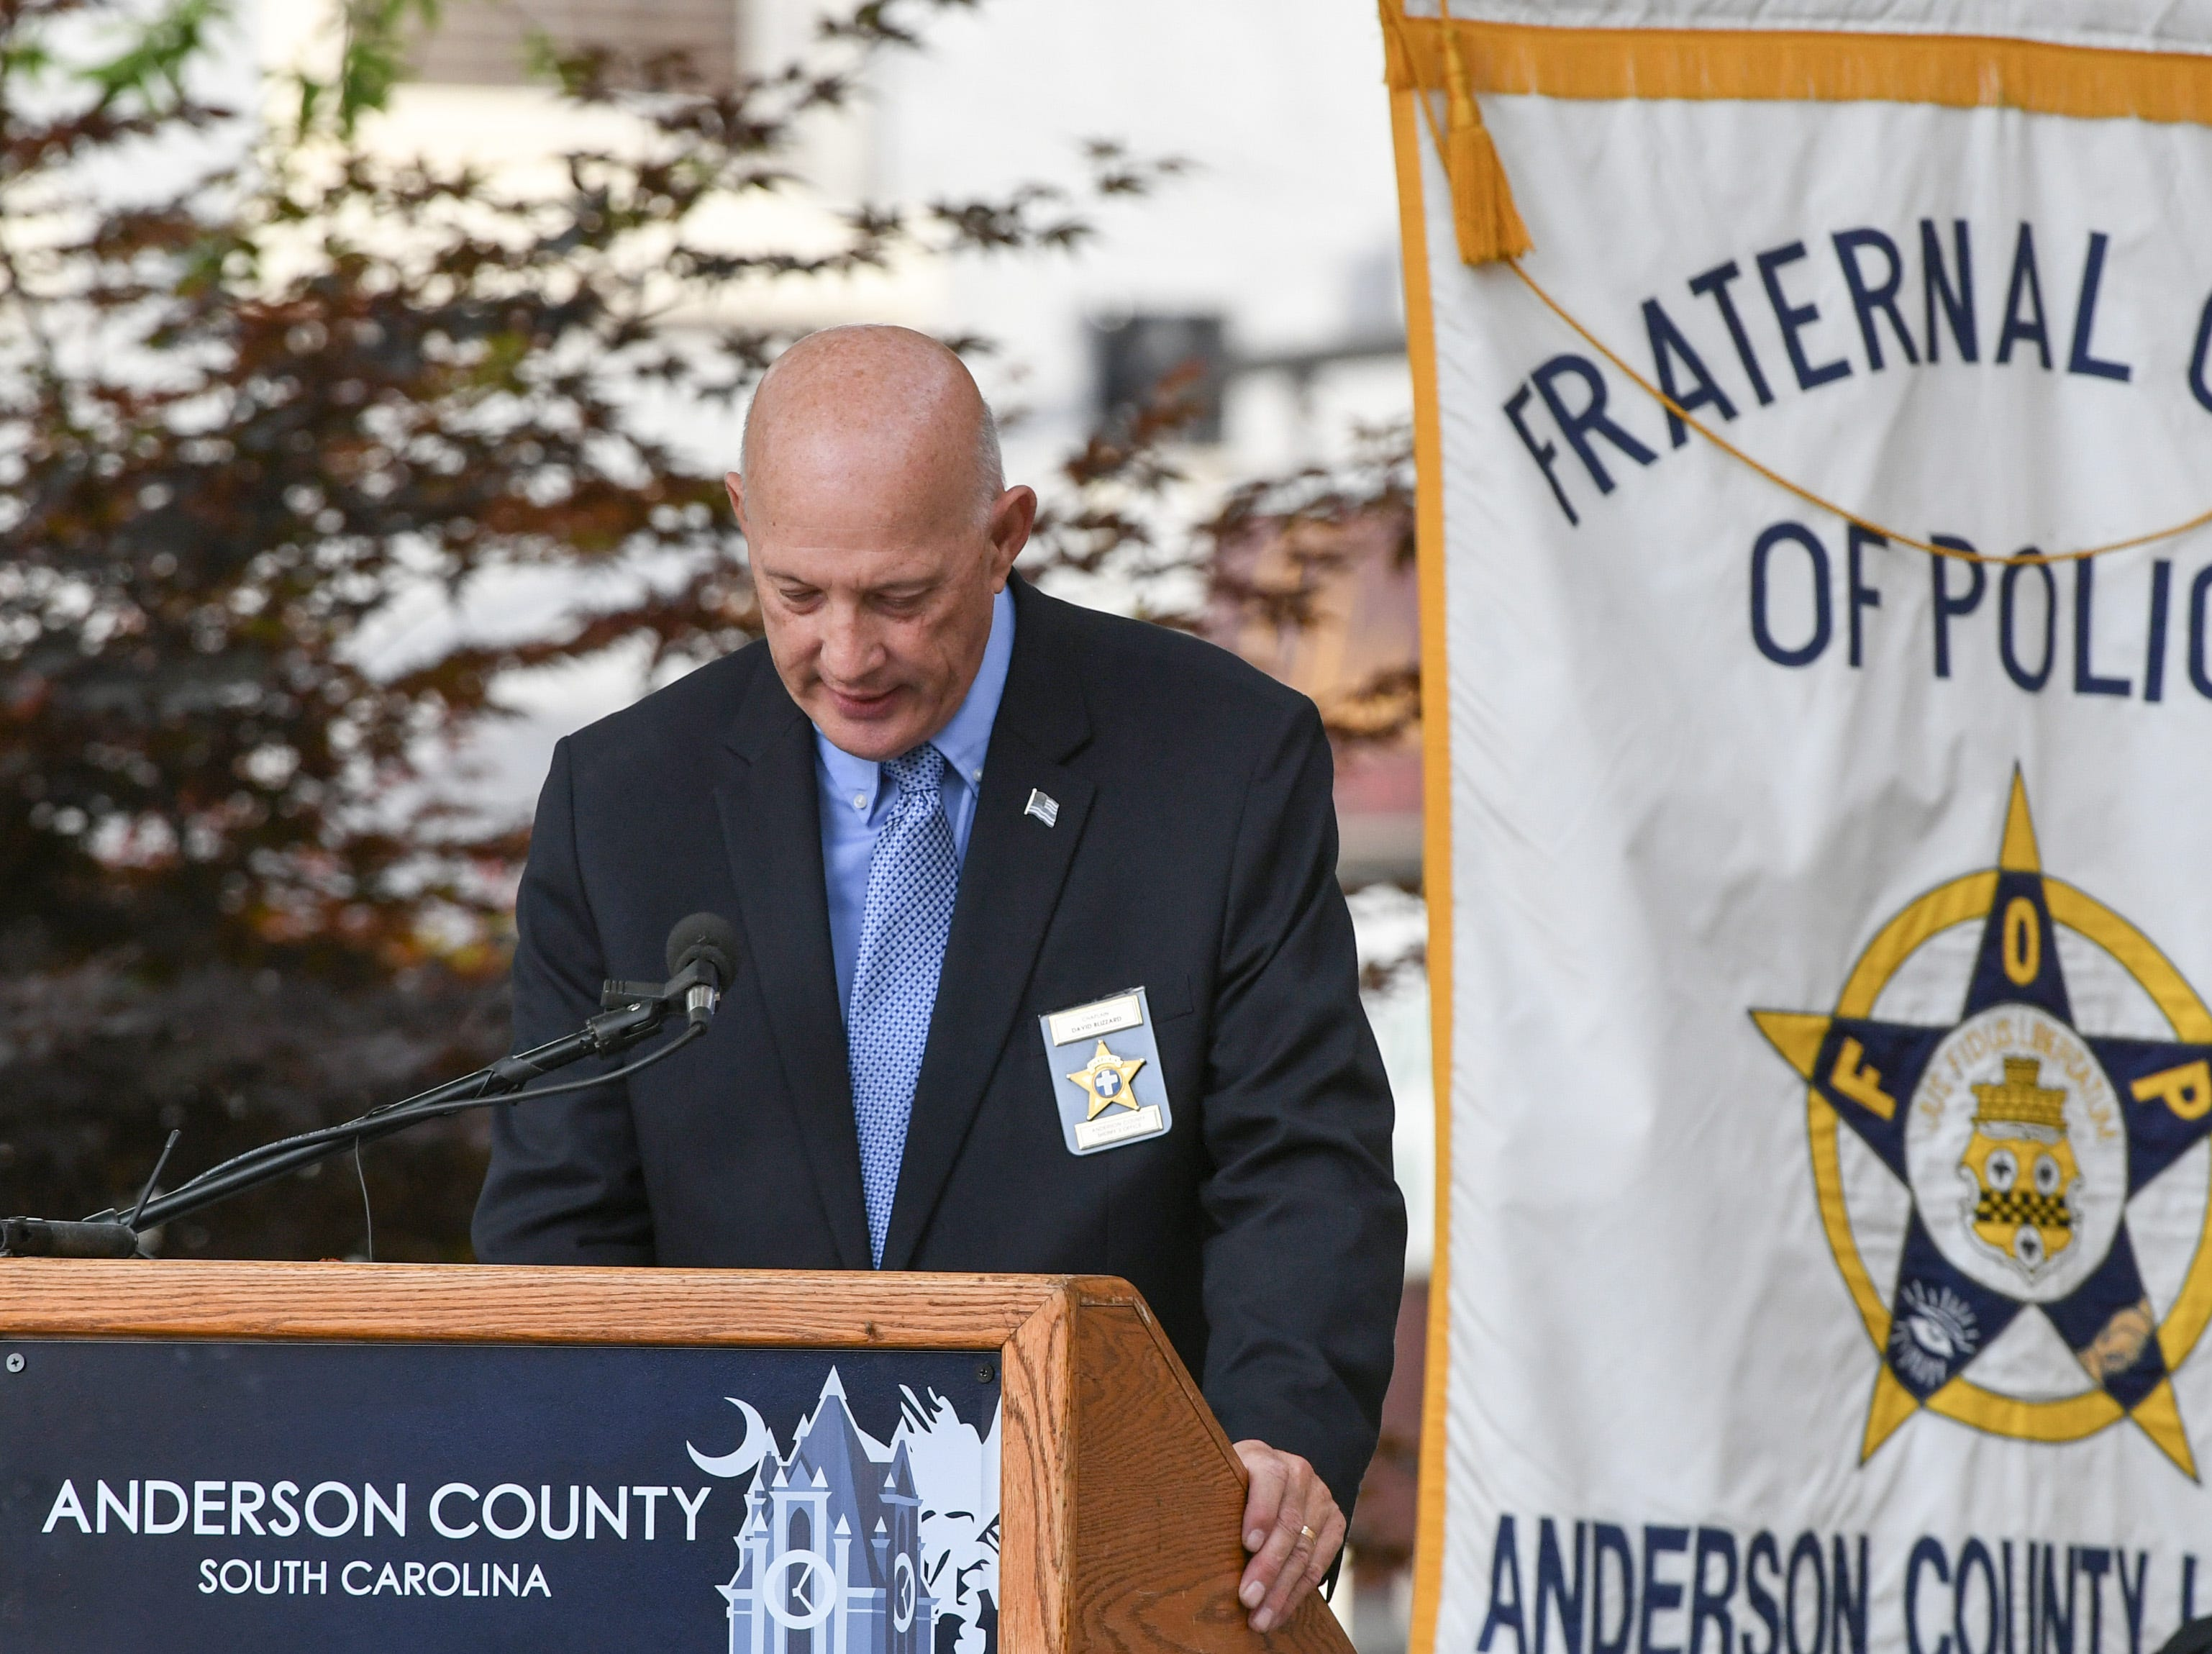 Rev. David Blizzard offers invocation during the 2019 Peace Officer Memorial Service Wednesday May 15, 2019, in front of the Anderson County courthouse. People attended to help honor the lives of officers lost in the line of duty.